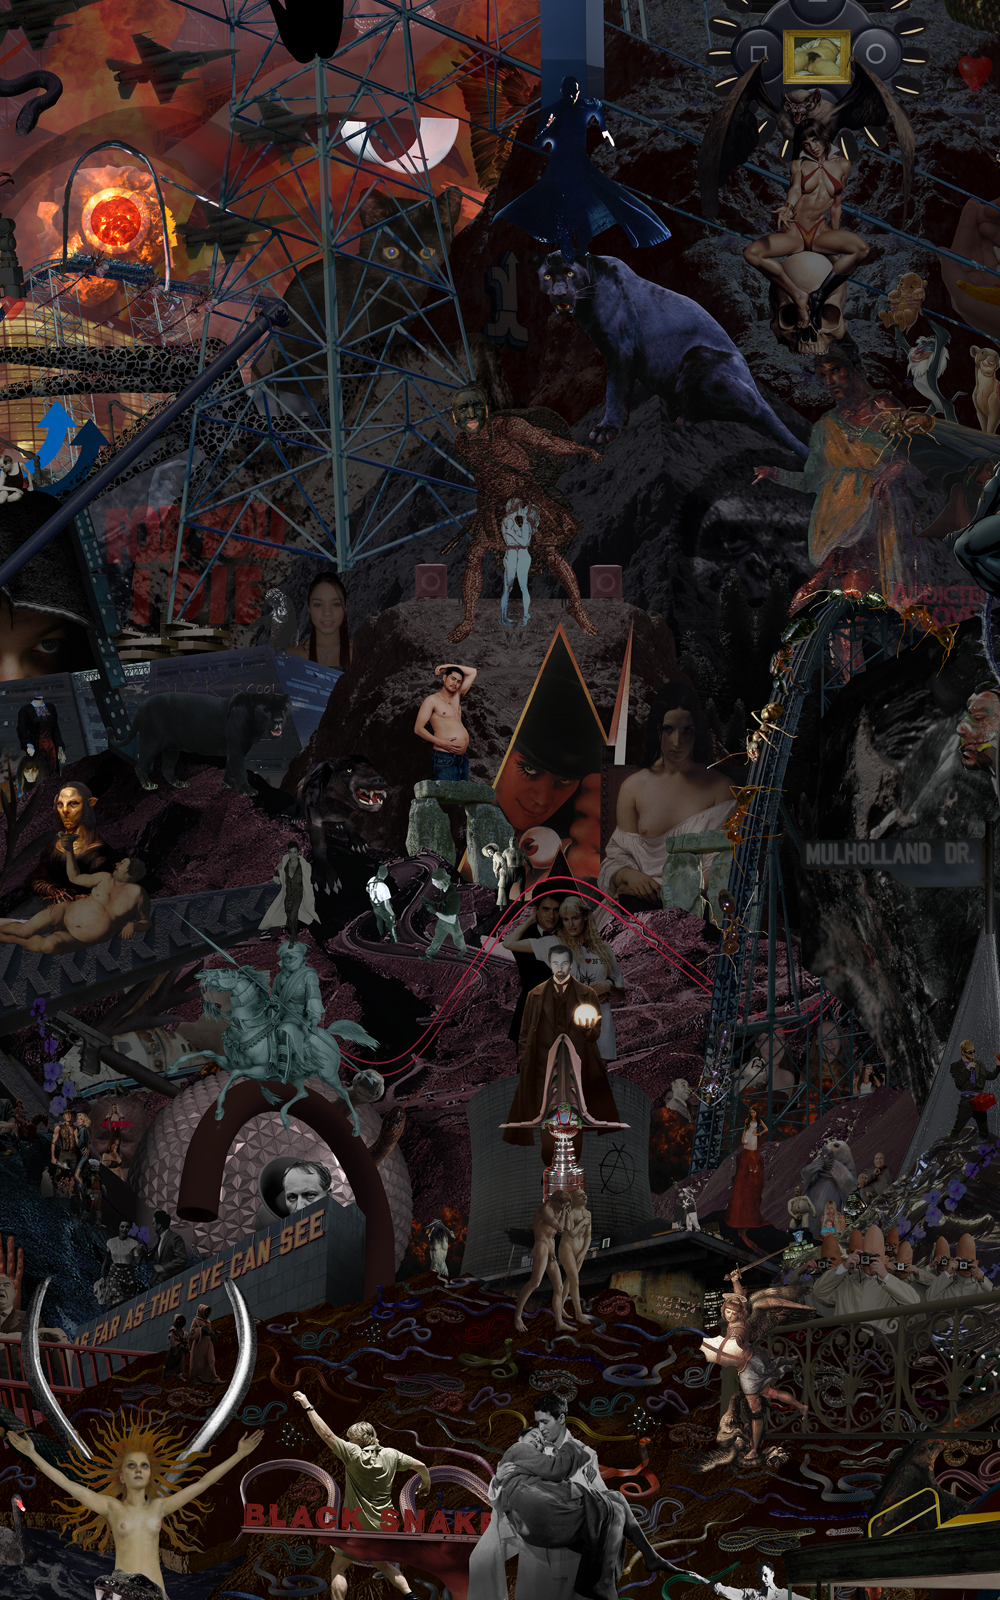 Case Simmons, Simmons & Burke, To Your Scattered Bodies Go #2, Hieronymus Bosch, Lightjet Print, Digital Collage,Digital Art, Photoshop Collage, Collage of Darkness, Horror Collage,Case Simmons Art, Case Simmons Artist, Collage Fine Art